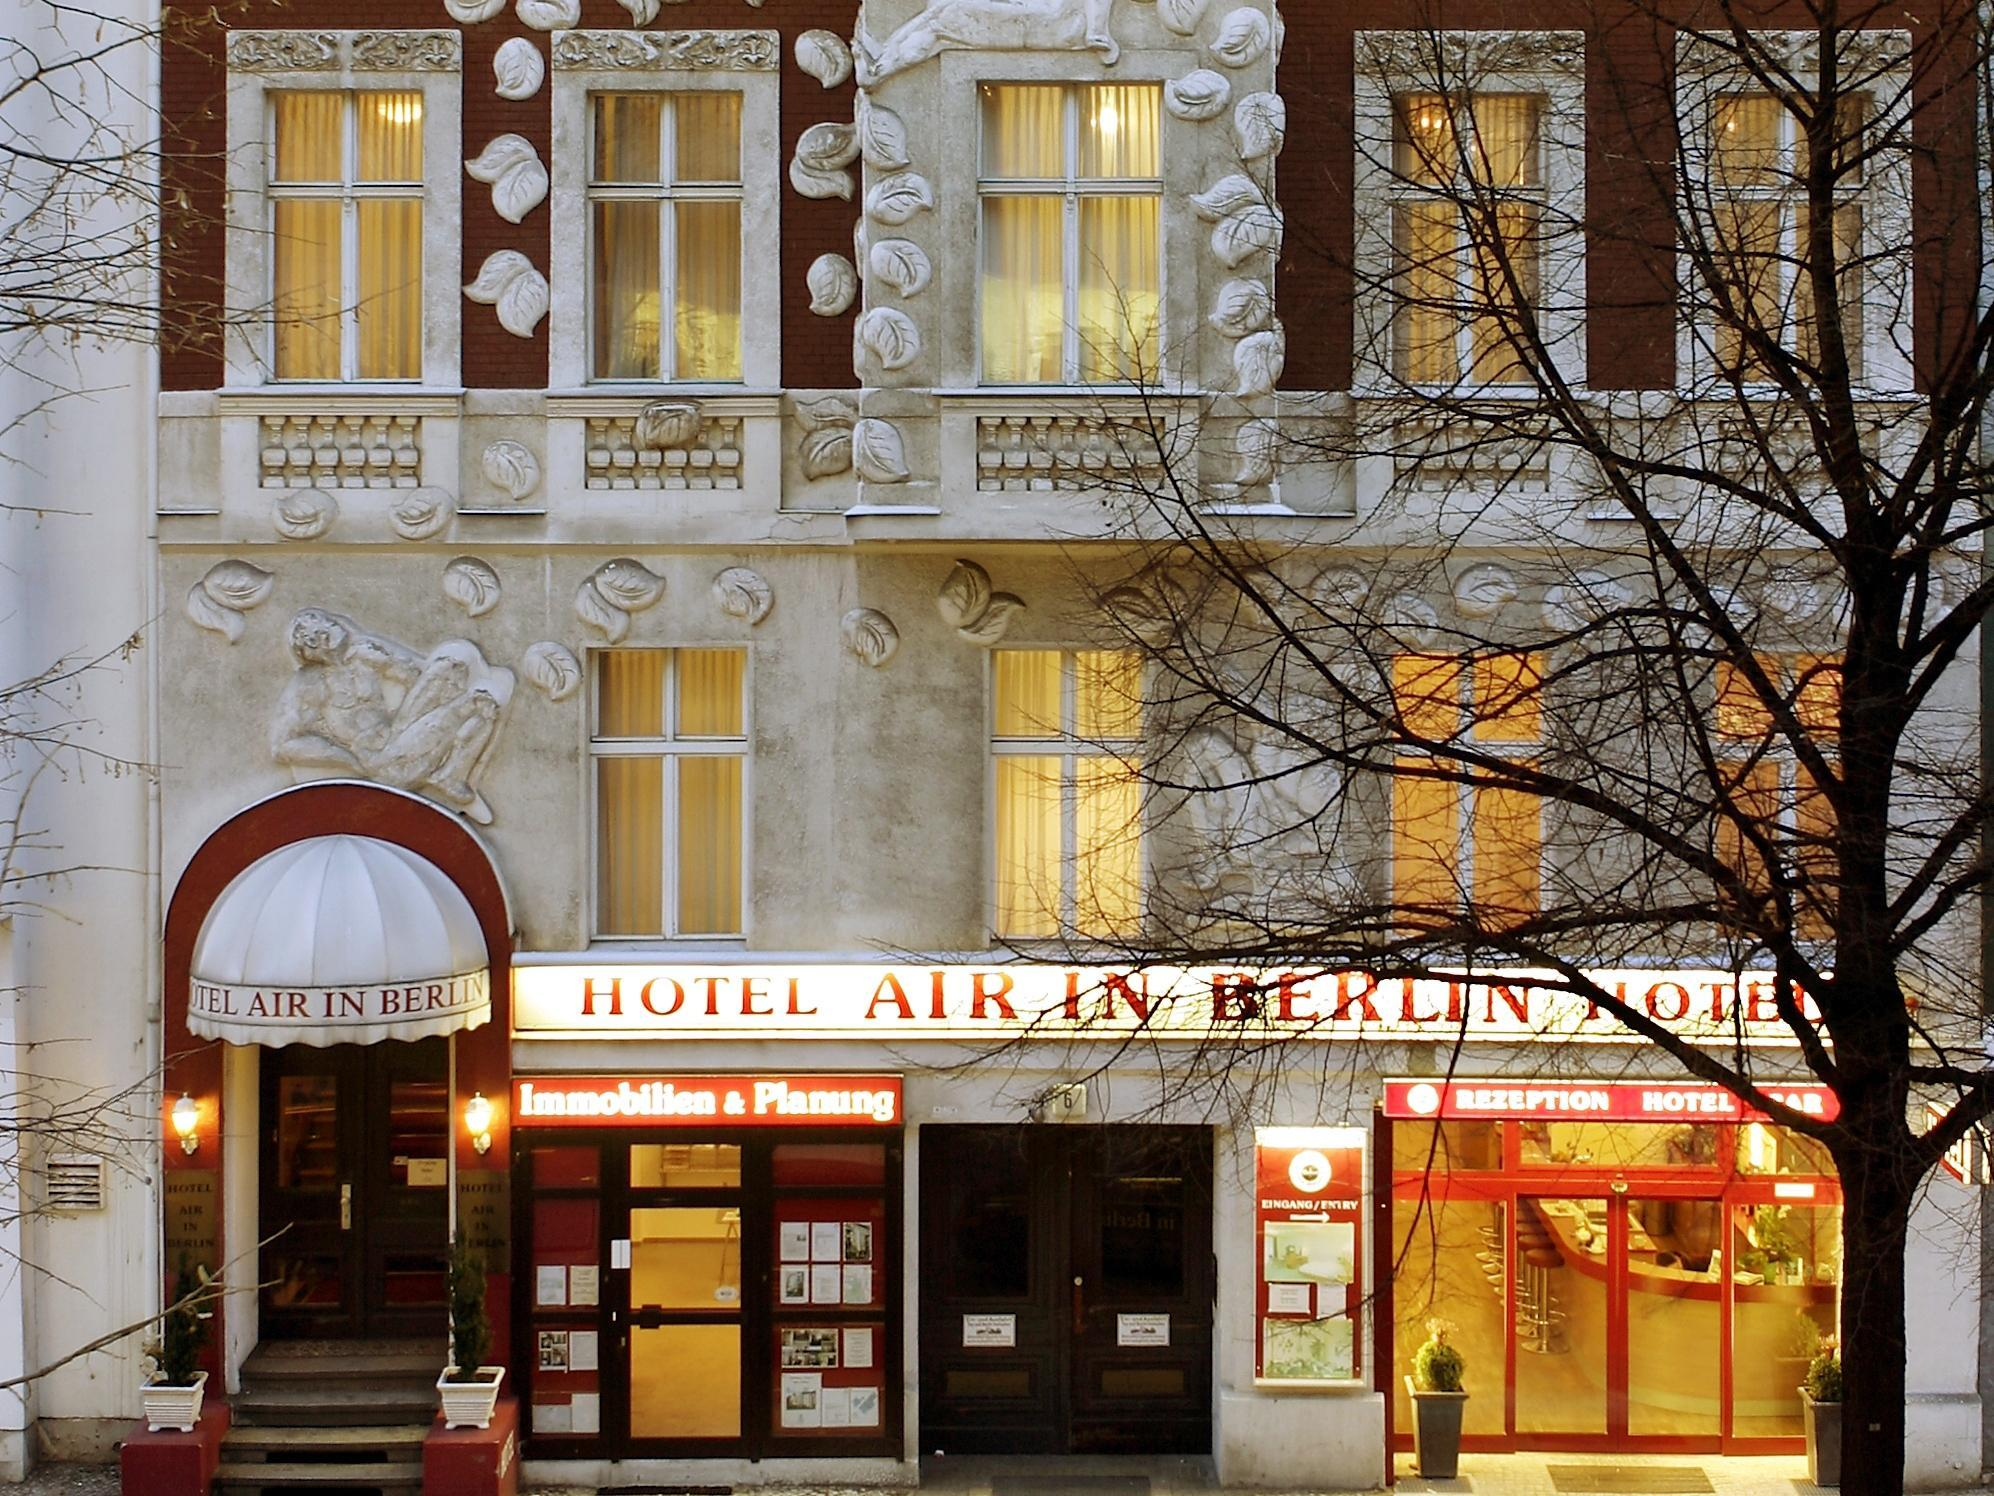 Hotel Air in Berlin Berlin